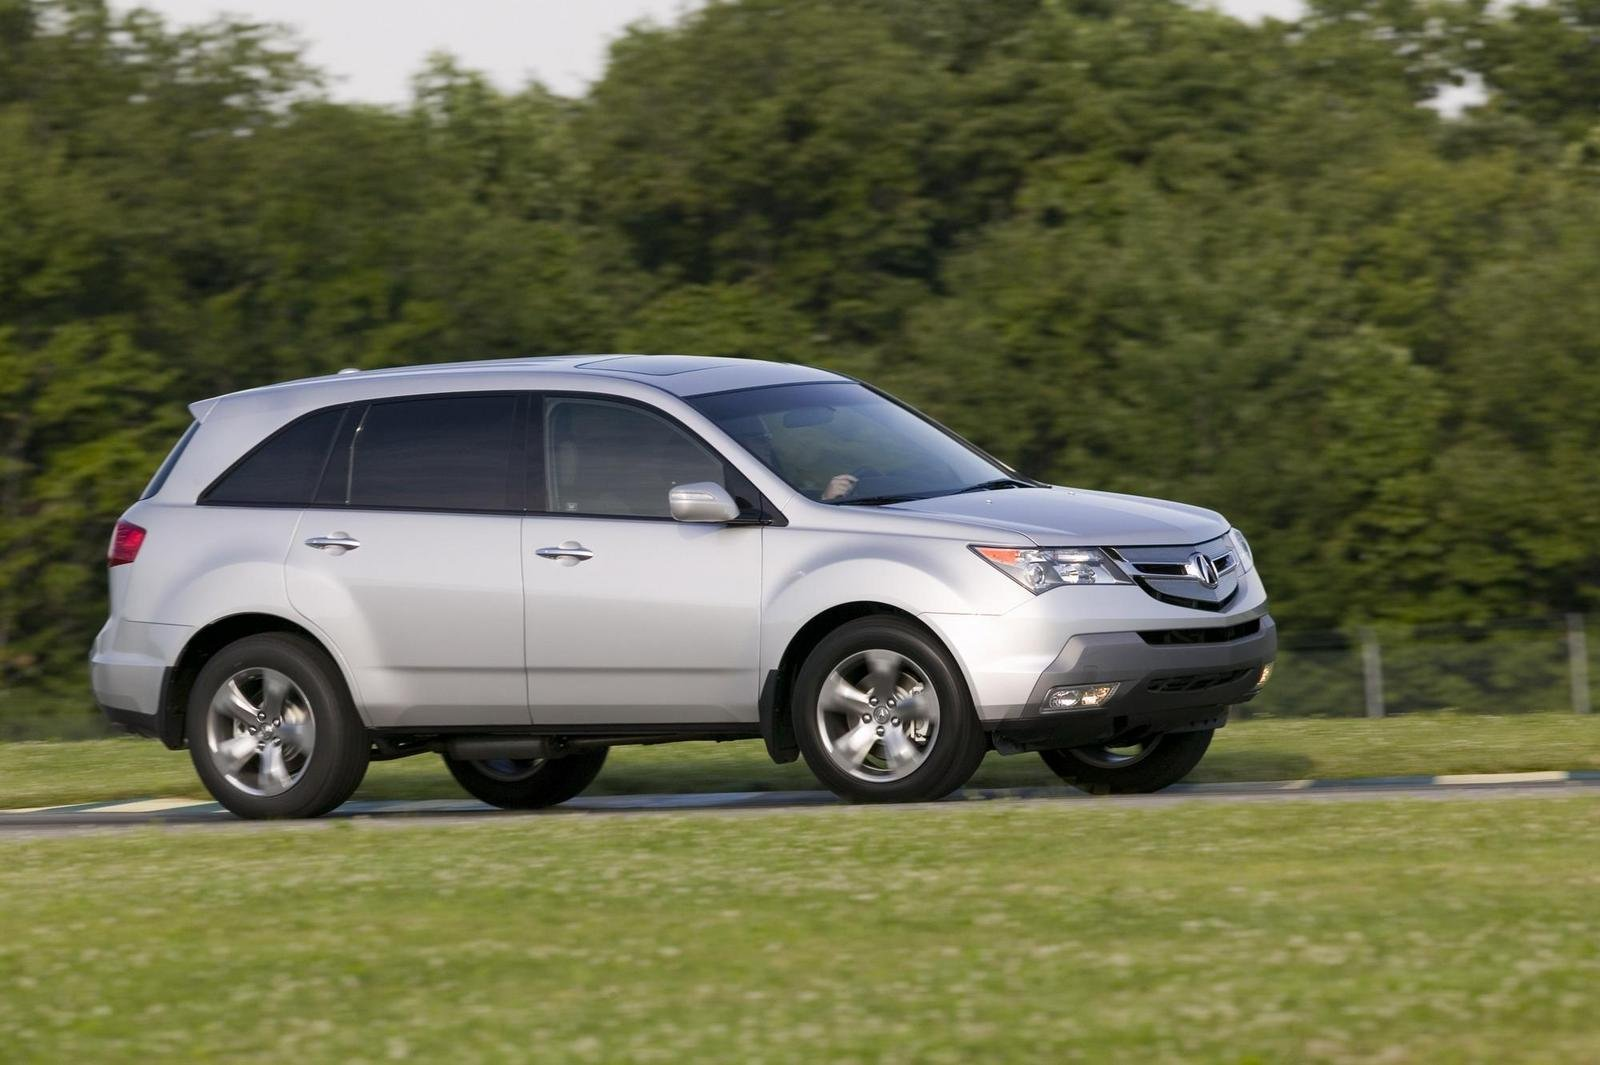 2009 acura mdx picture 299812 car review top speed. Black Bedroom Furniture Sets. Home Design Ideas